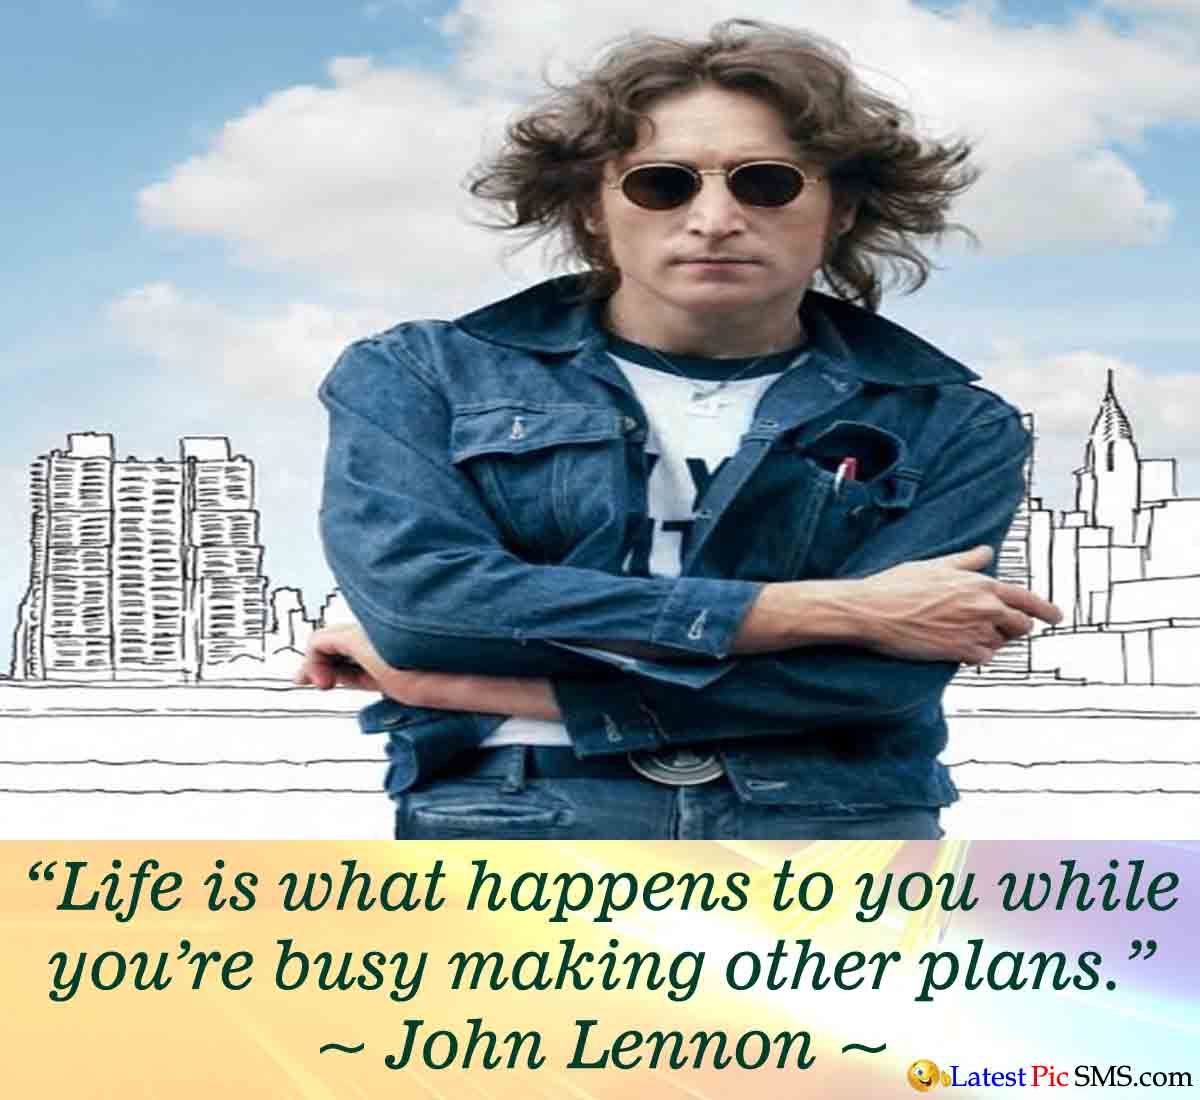 John Lennon life quote - Thoughts on Life Images for Whatsapp and Facebook